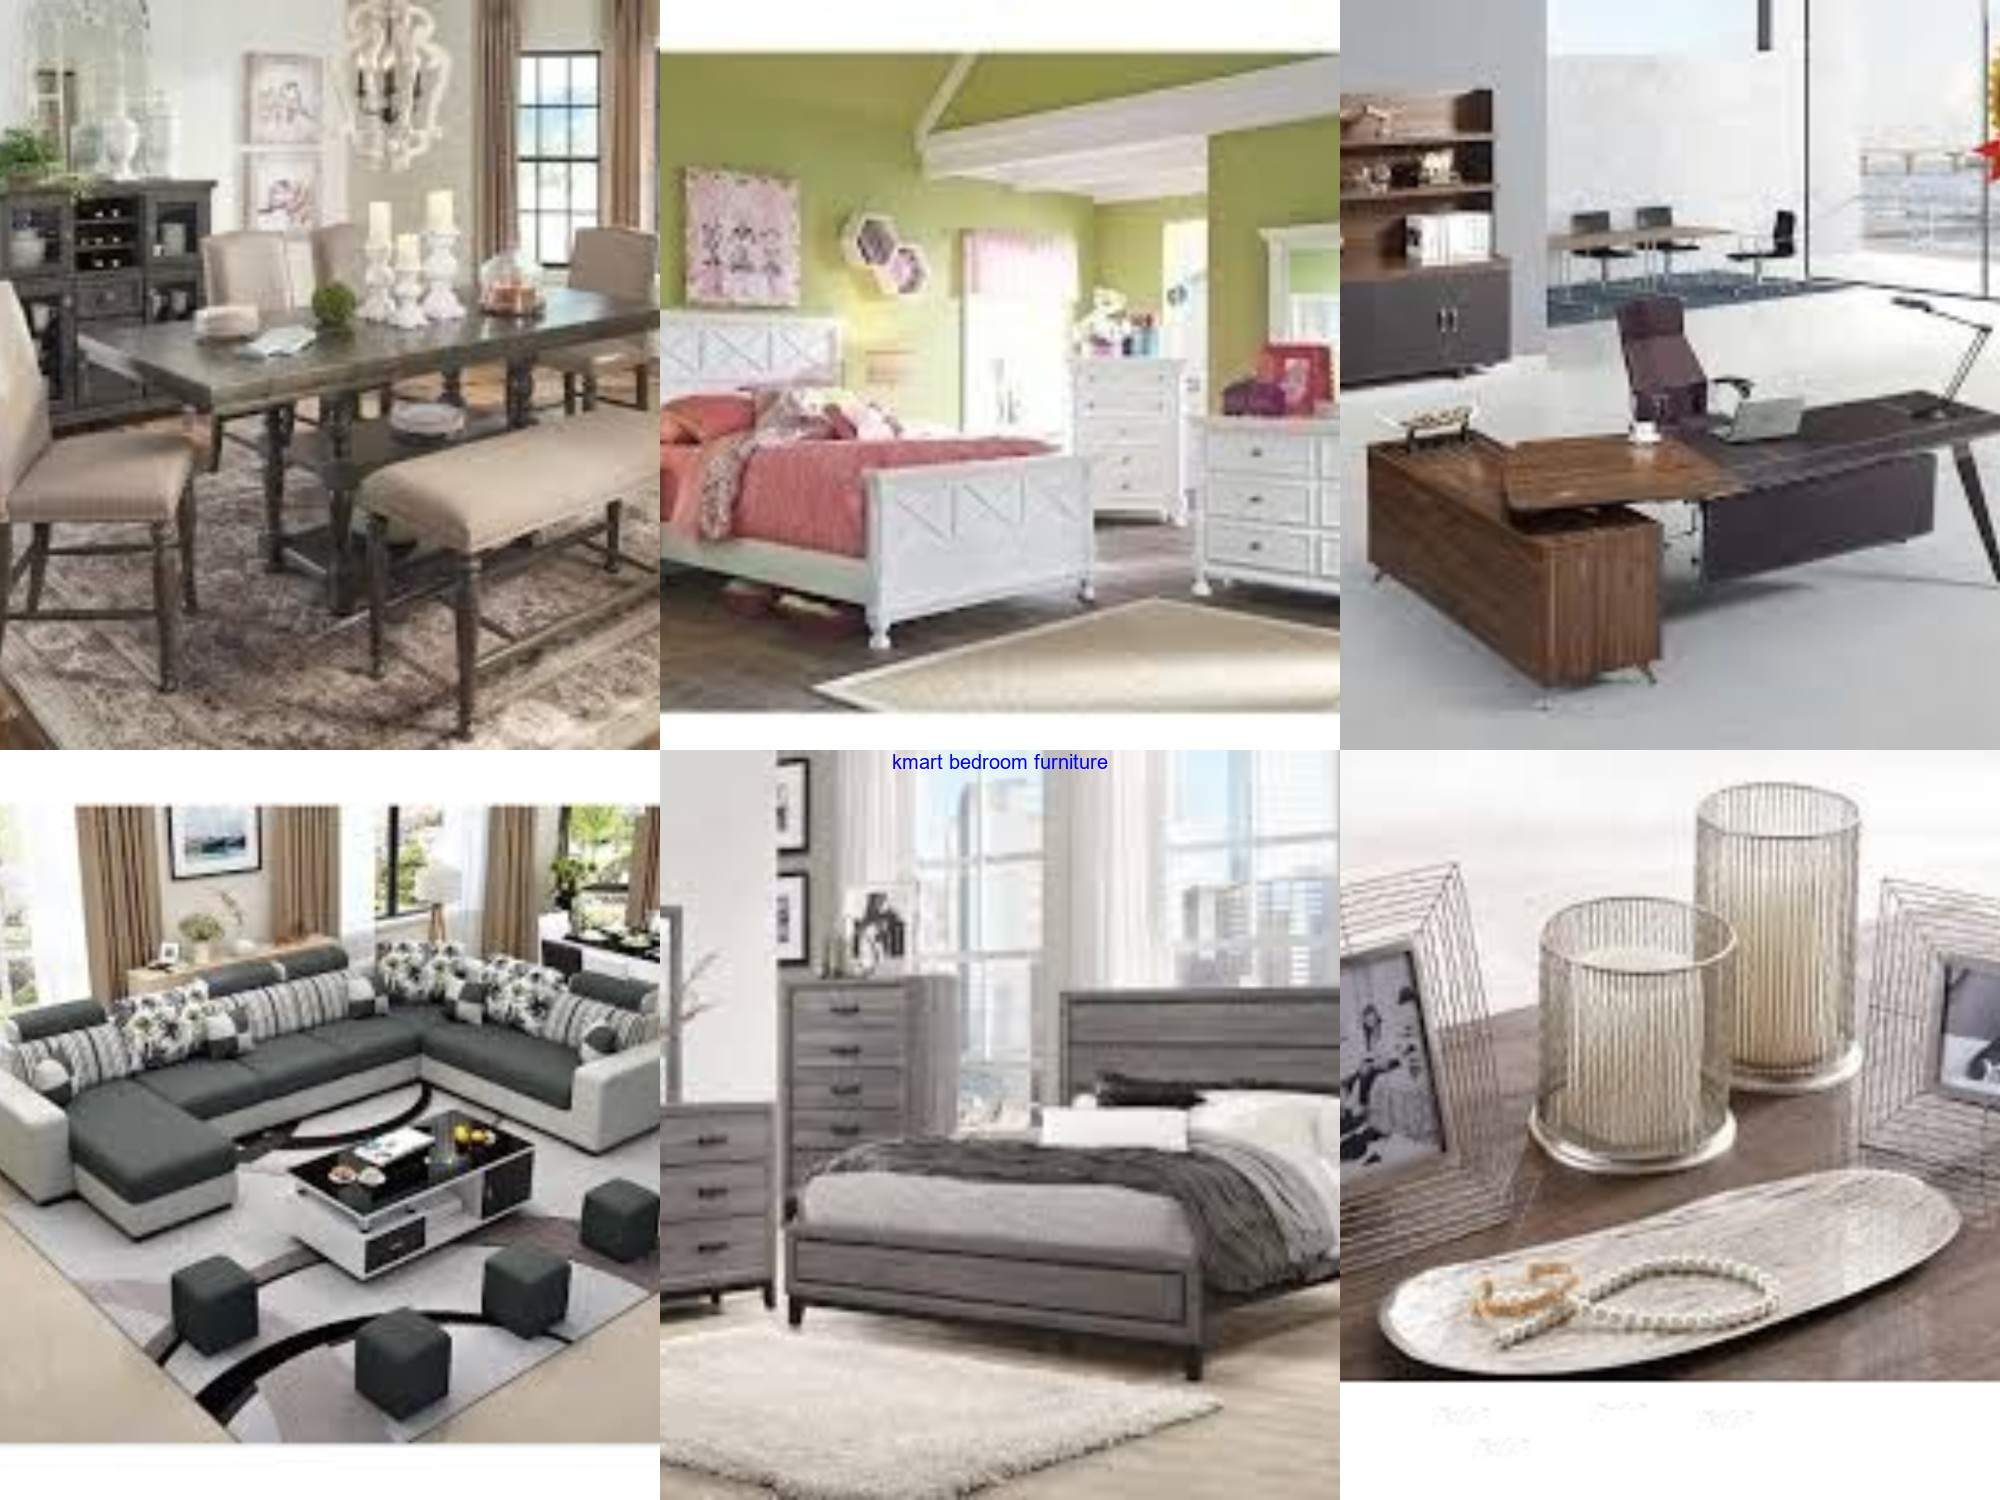 kmart bedroom furniture in 2020 | furniture prices, ashley